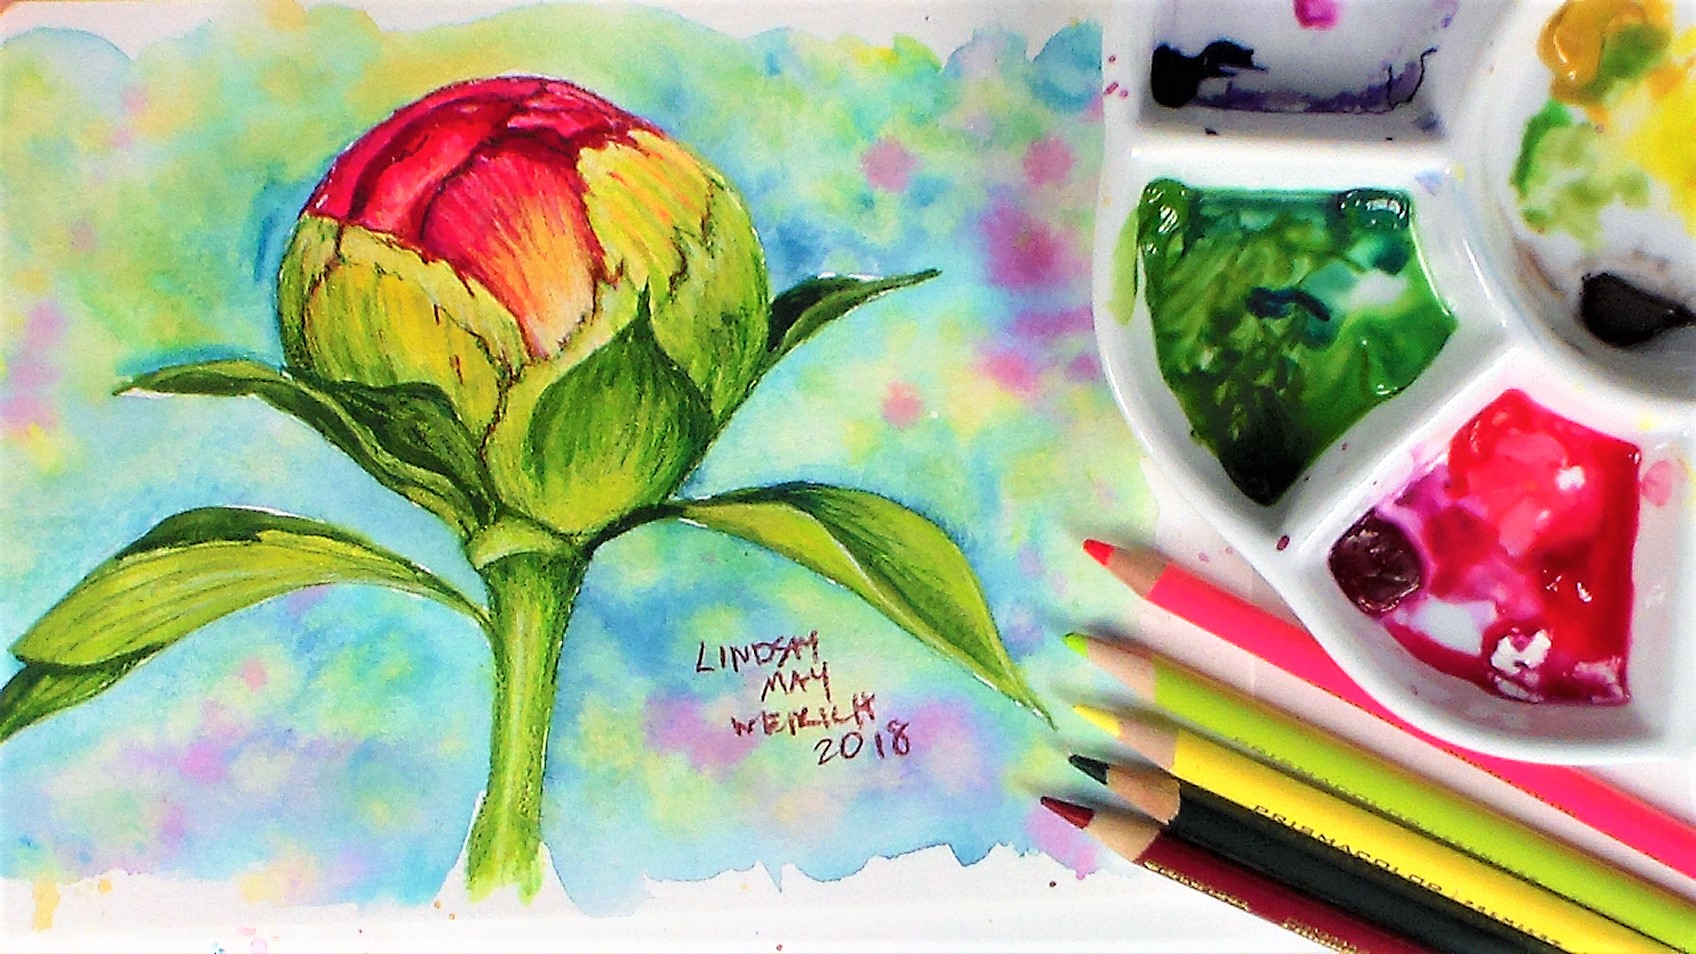 10 Tips for Using Cheap Watercolor Supplies PLUS 5 Reason Cheap Watercolors are Great!